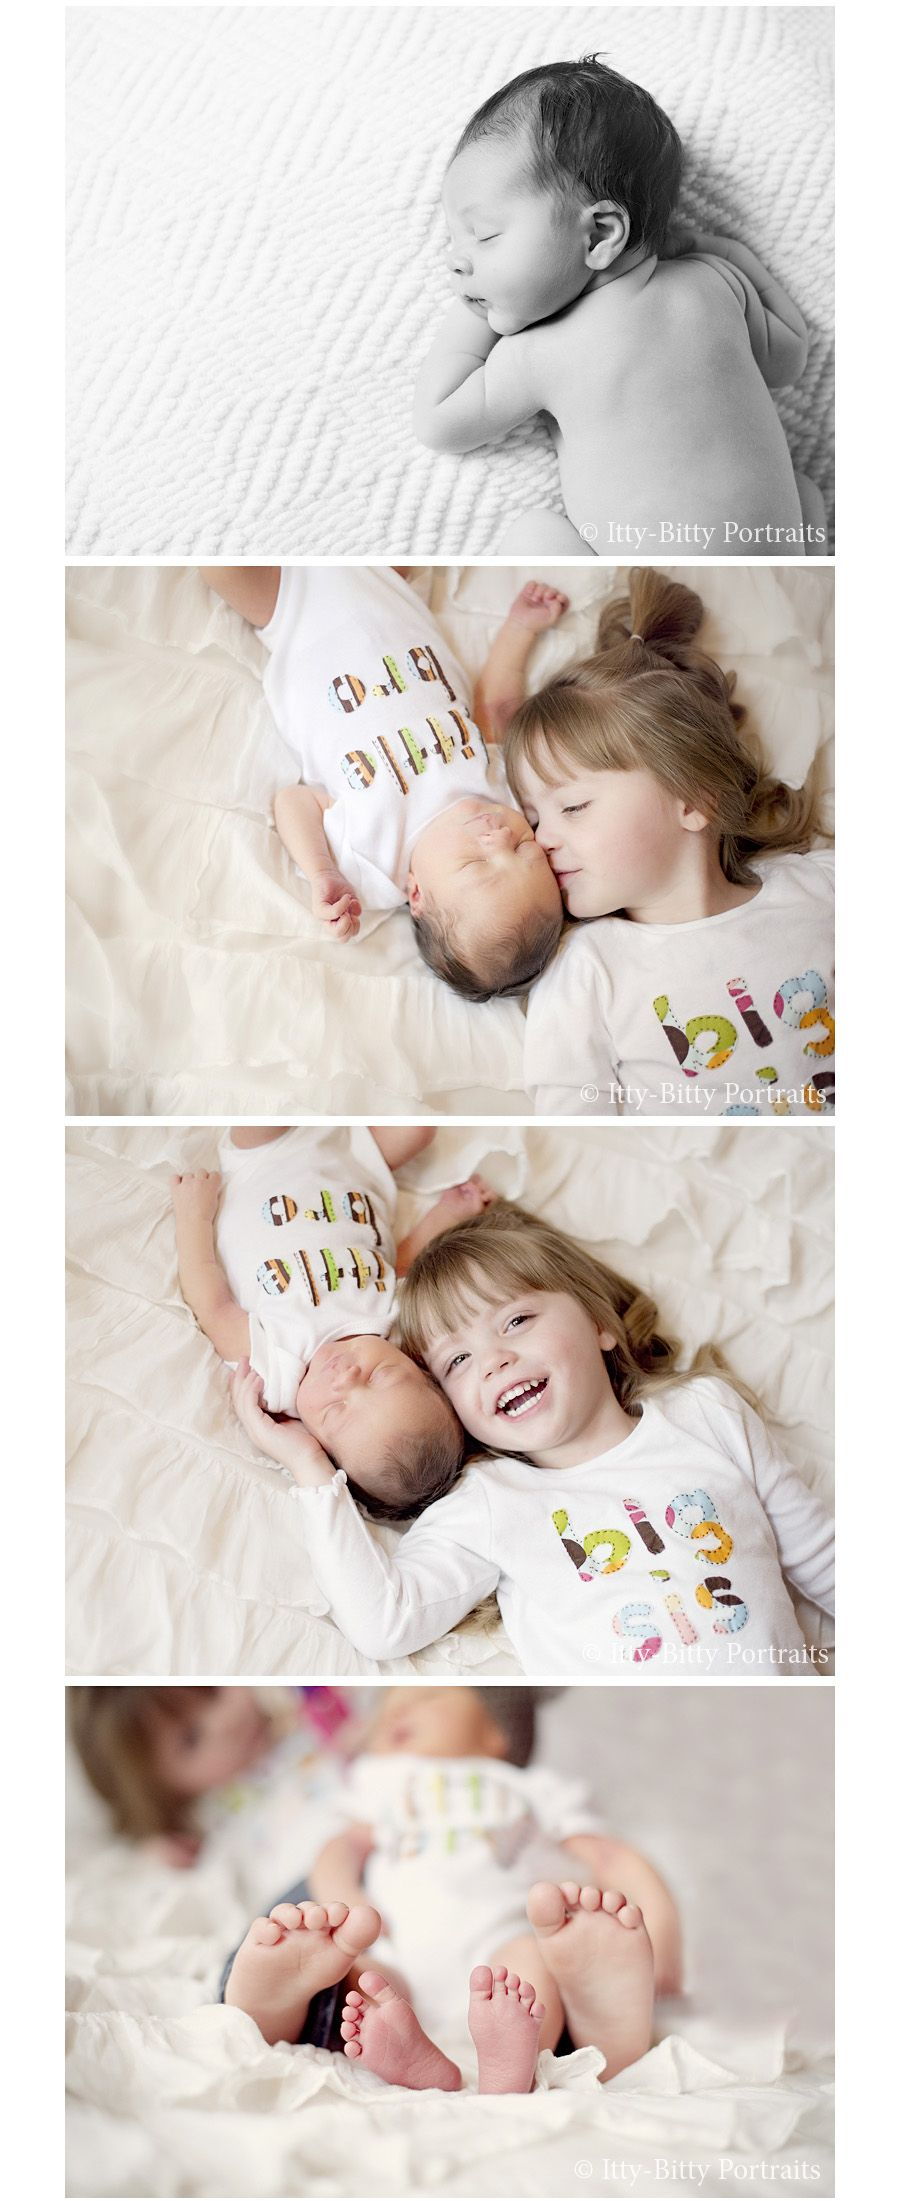 Having baby 2 is a huge inspiration for myself and my partner i would love to give my daughter a baby brother or sister one day